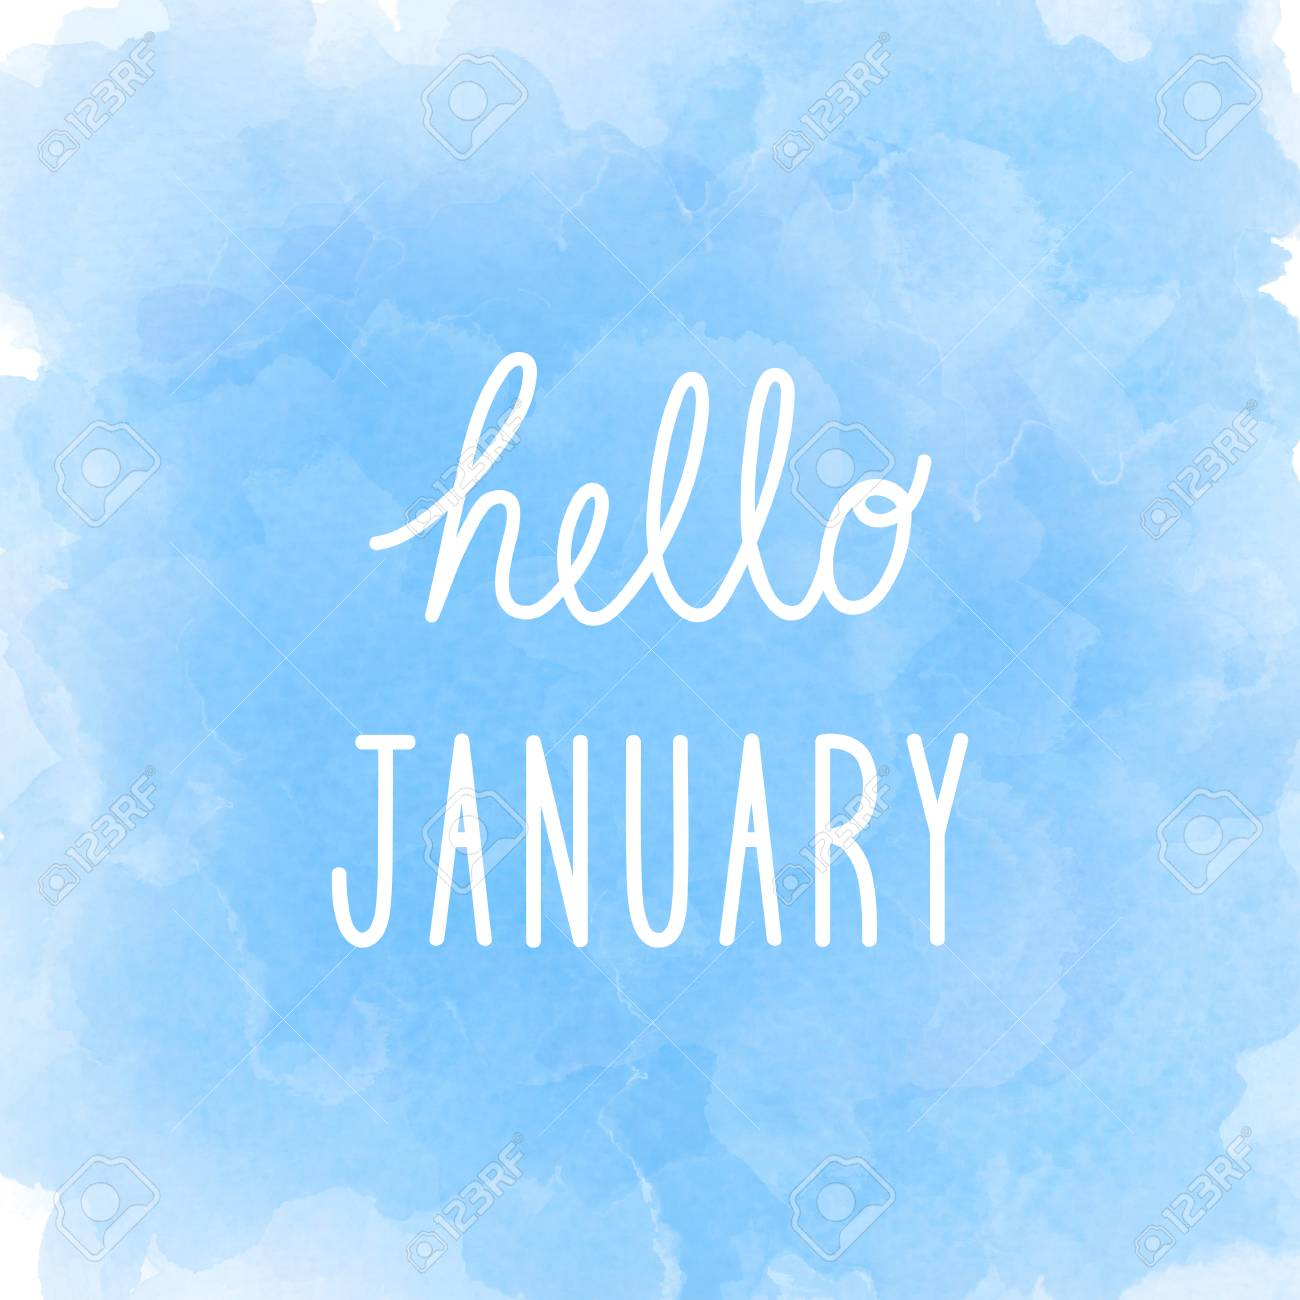 Hello January Greeting On Abstract Blue Watercolor Background 1300x1300